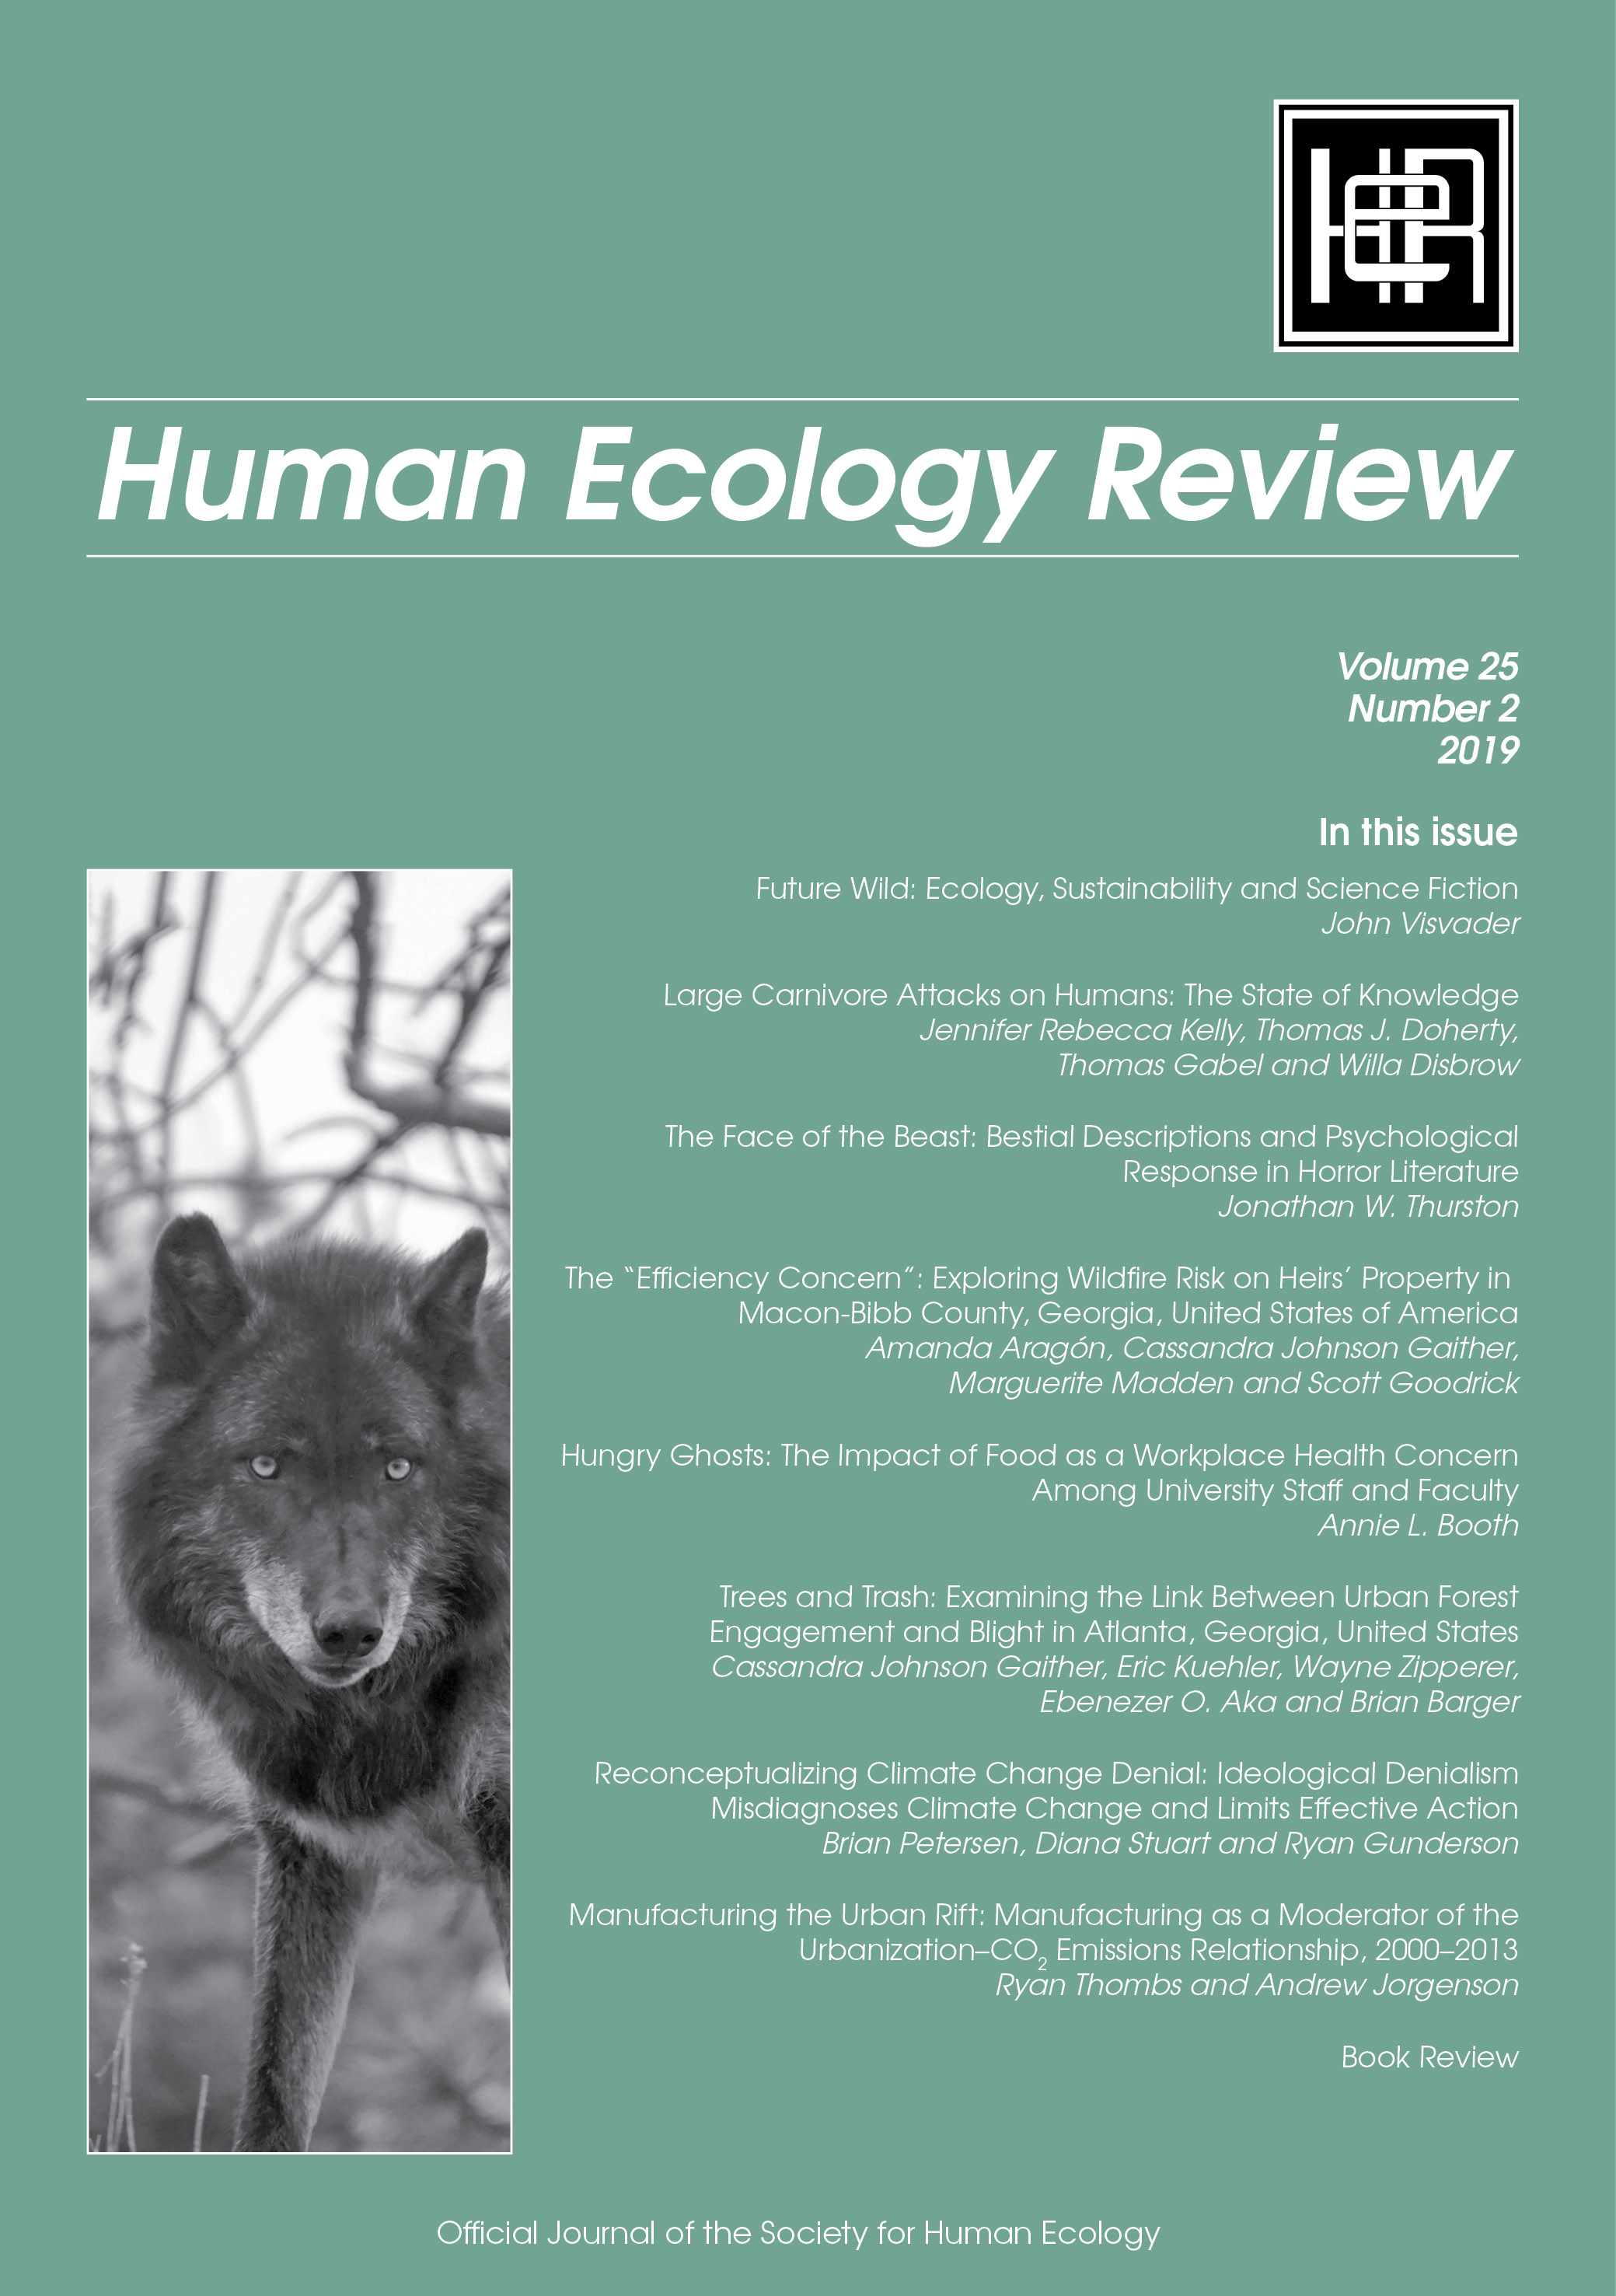 MSU Sociology/ Animal Studies dominate latest HER issue